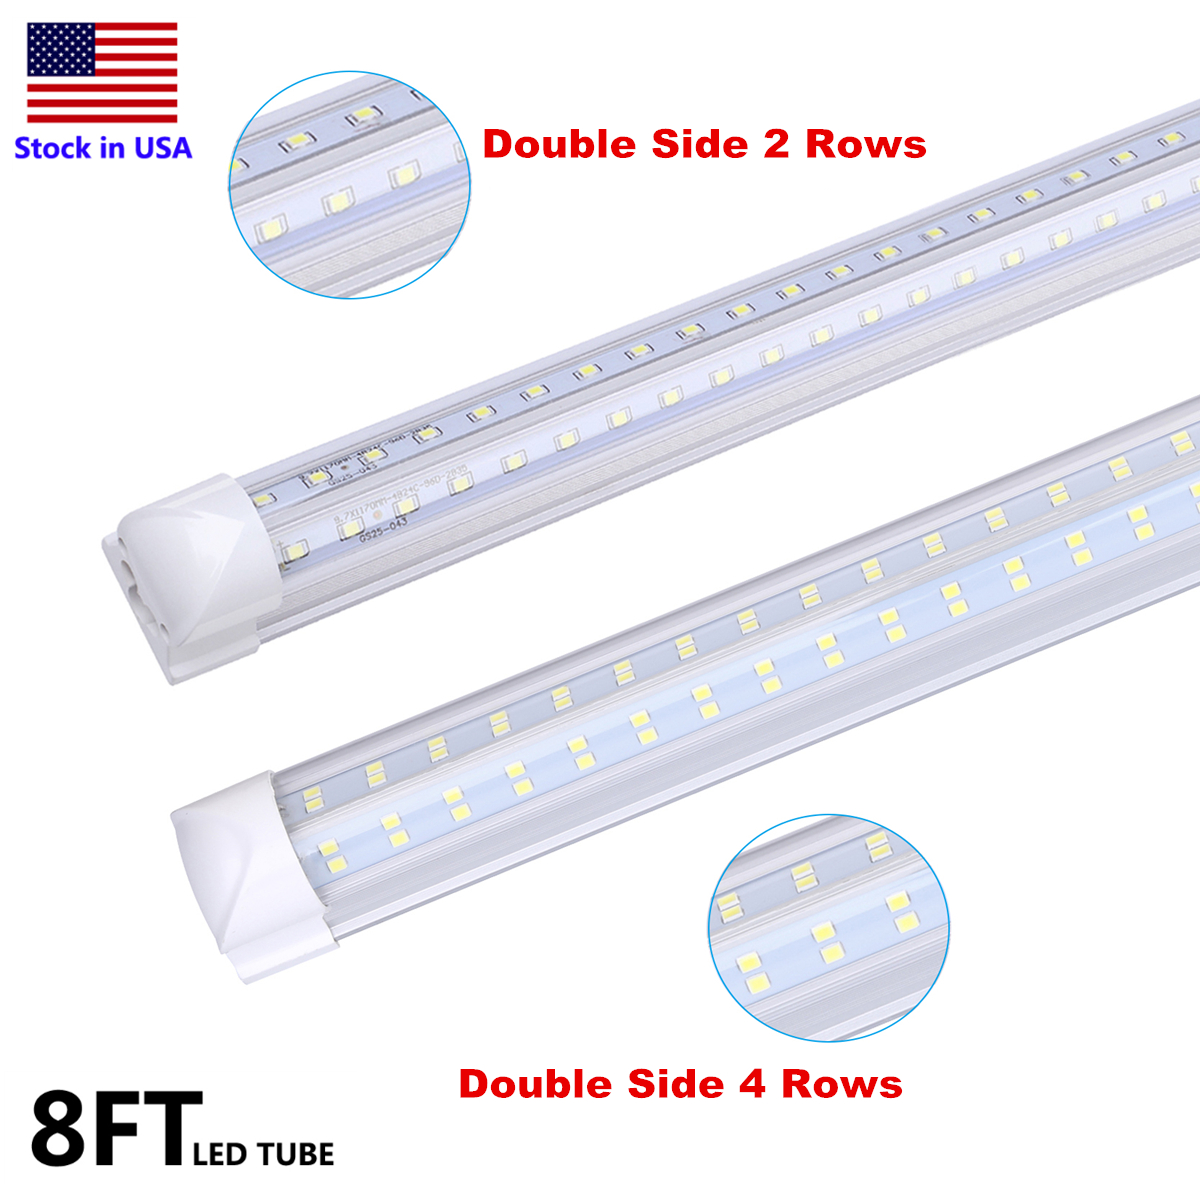 8ft Double Side 4 Rows 120W LED <font><b>Tube</b></font> Light Shop Light V-shaped Integrate T8 LED <font><b>Tube</b></font> integrated Cooler Door Stock In US image